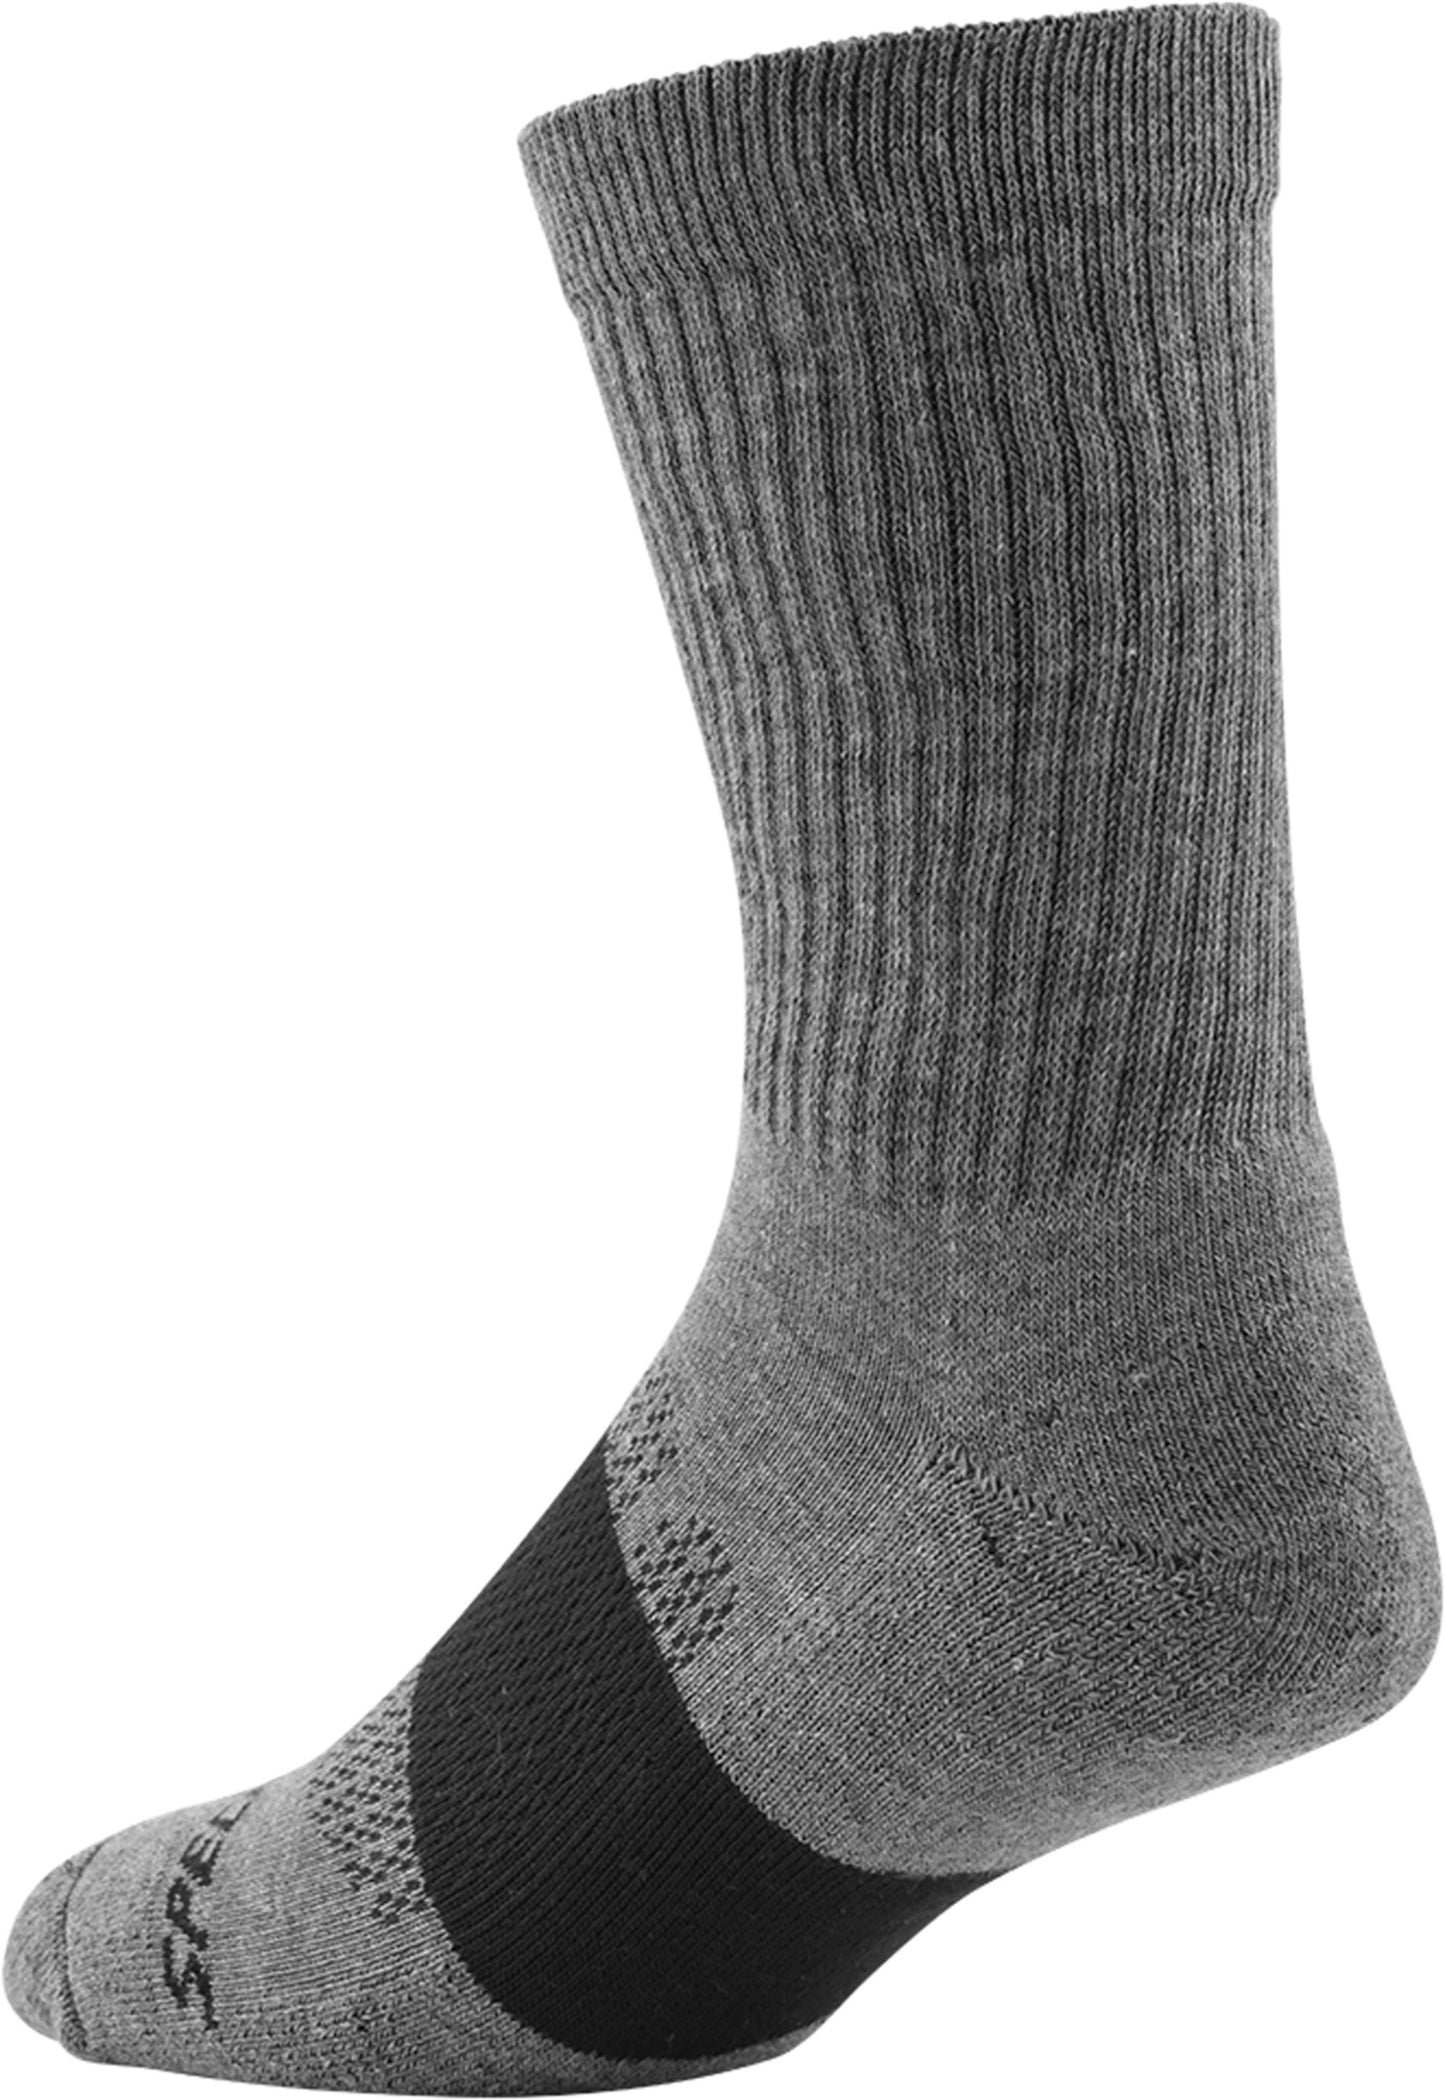 Women's Mountain Tall Socks